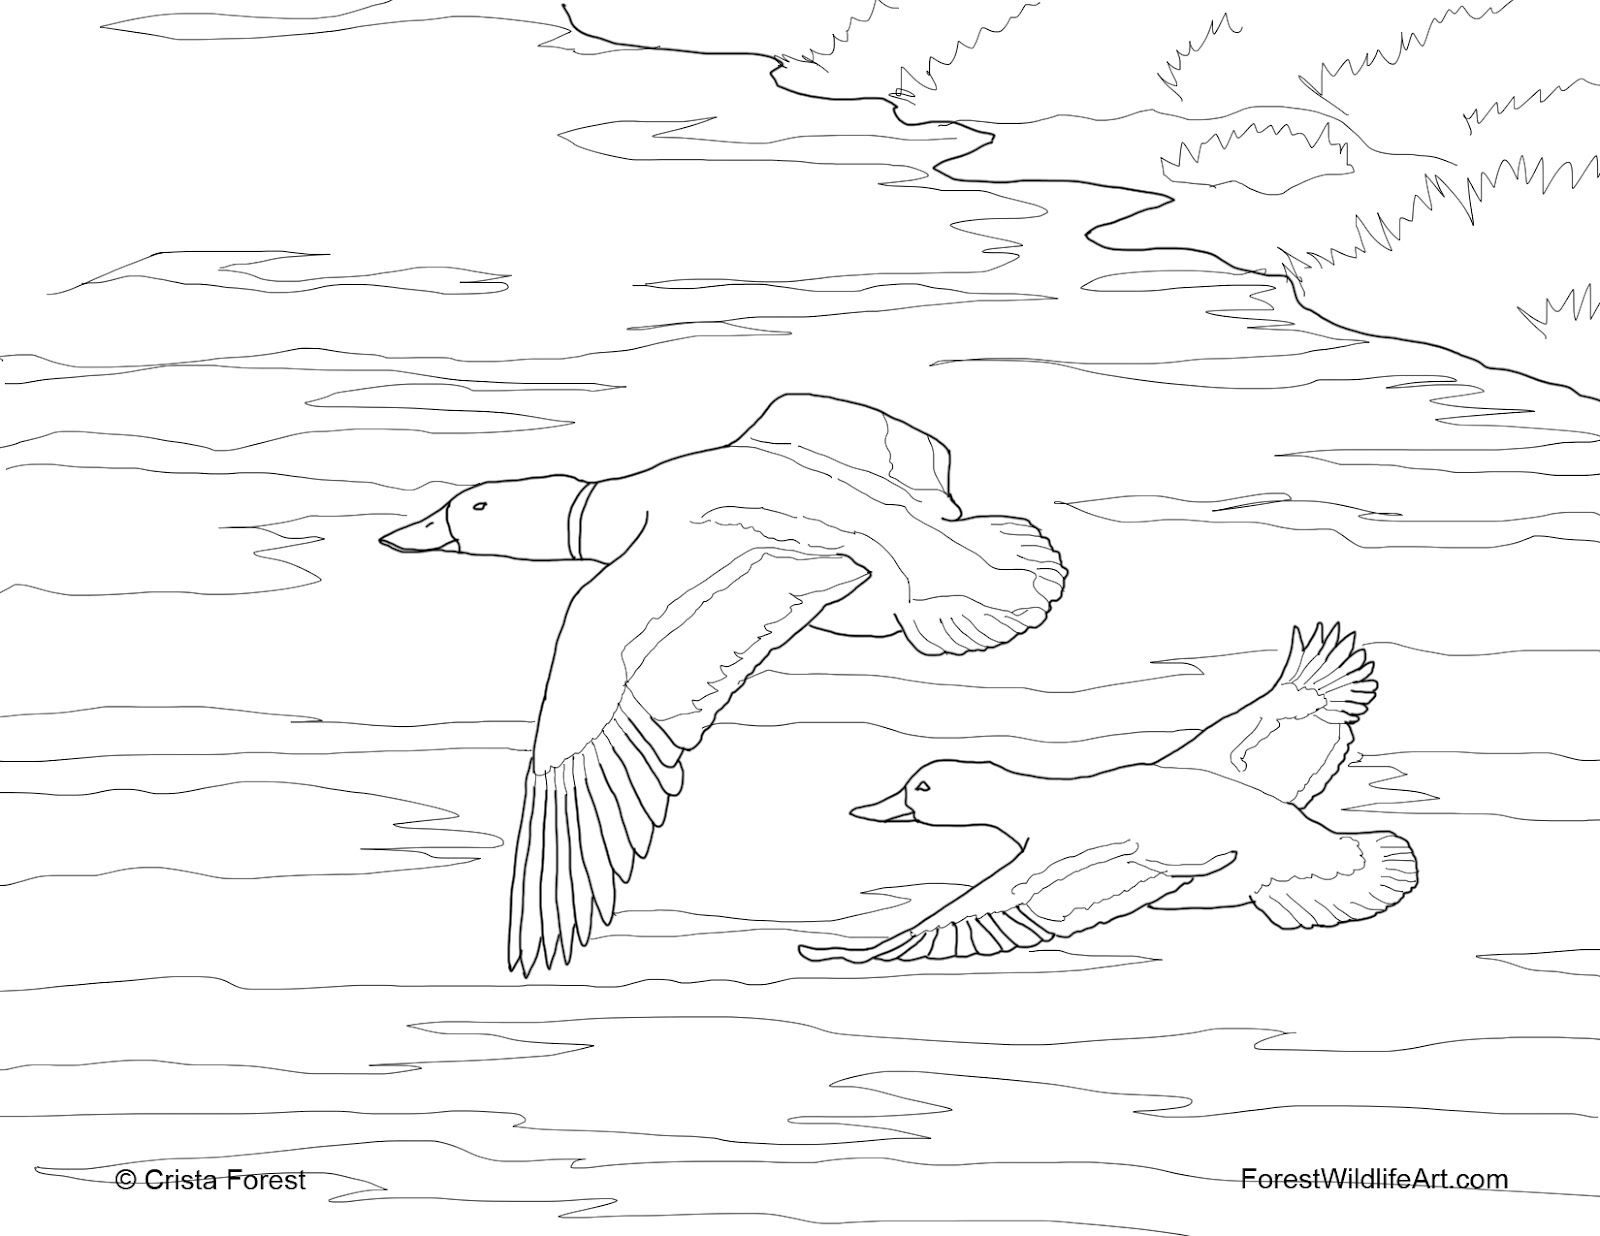 Coloring pages quebec - Find This Pin And More On Kids Nature Activities Quebec Duck Hunting Coloring Pages